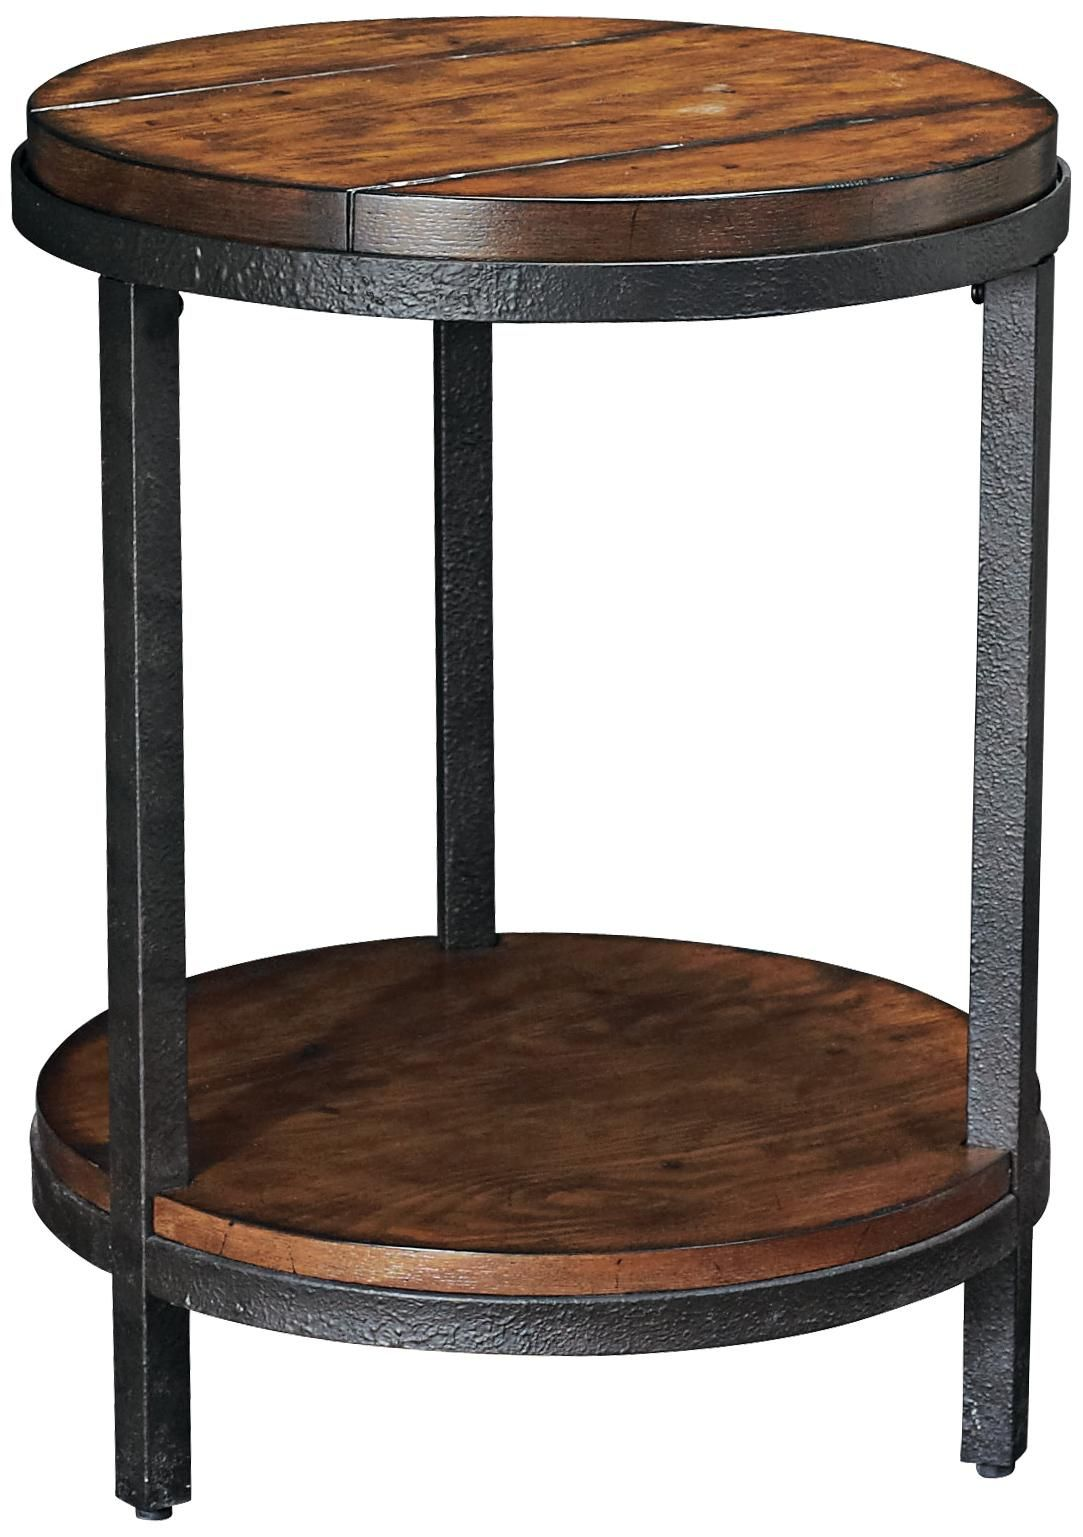 Hammary Baja 18 Wide Round Wood End Table 2f916 Lamps Plus End Tables Side Table Wood End Tables [ 1537 x 1083 Pixel ]